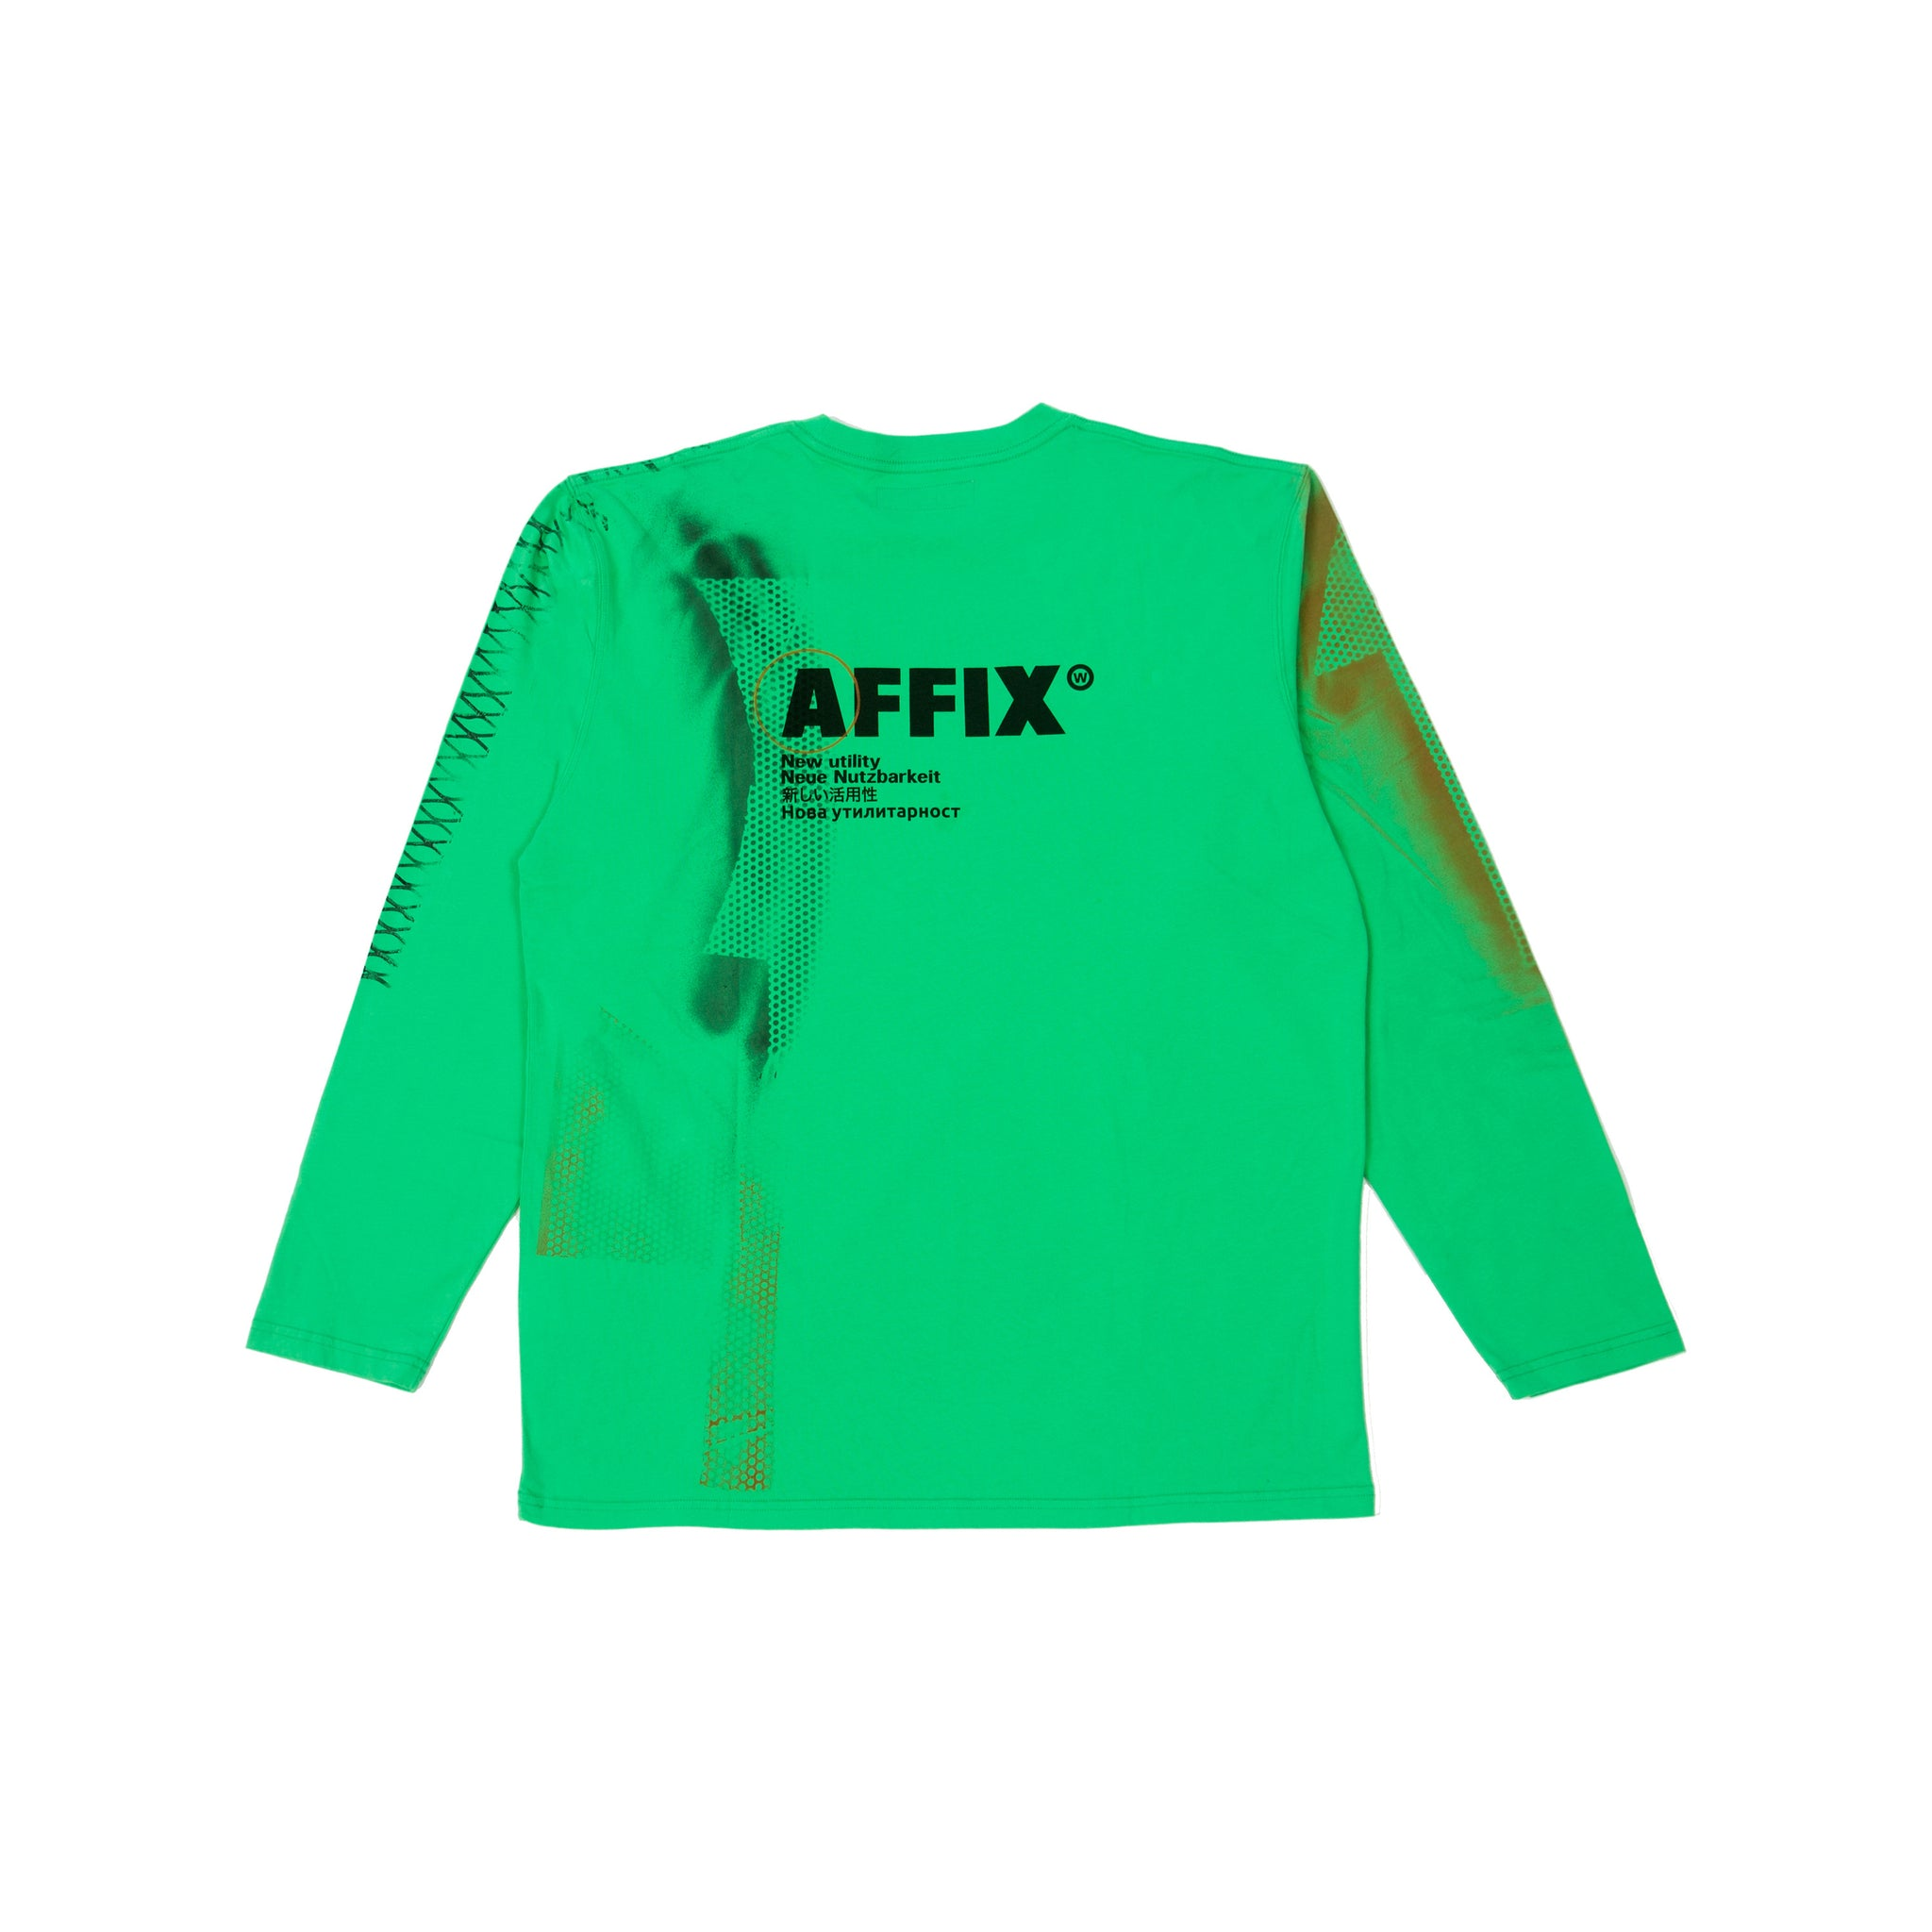 AFFIX re WORKS T-SHIRT LS 06 XL